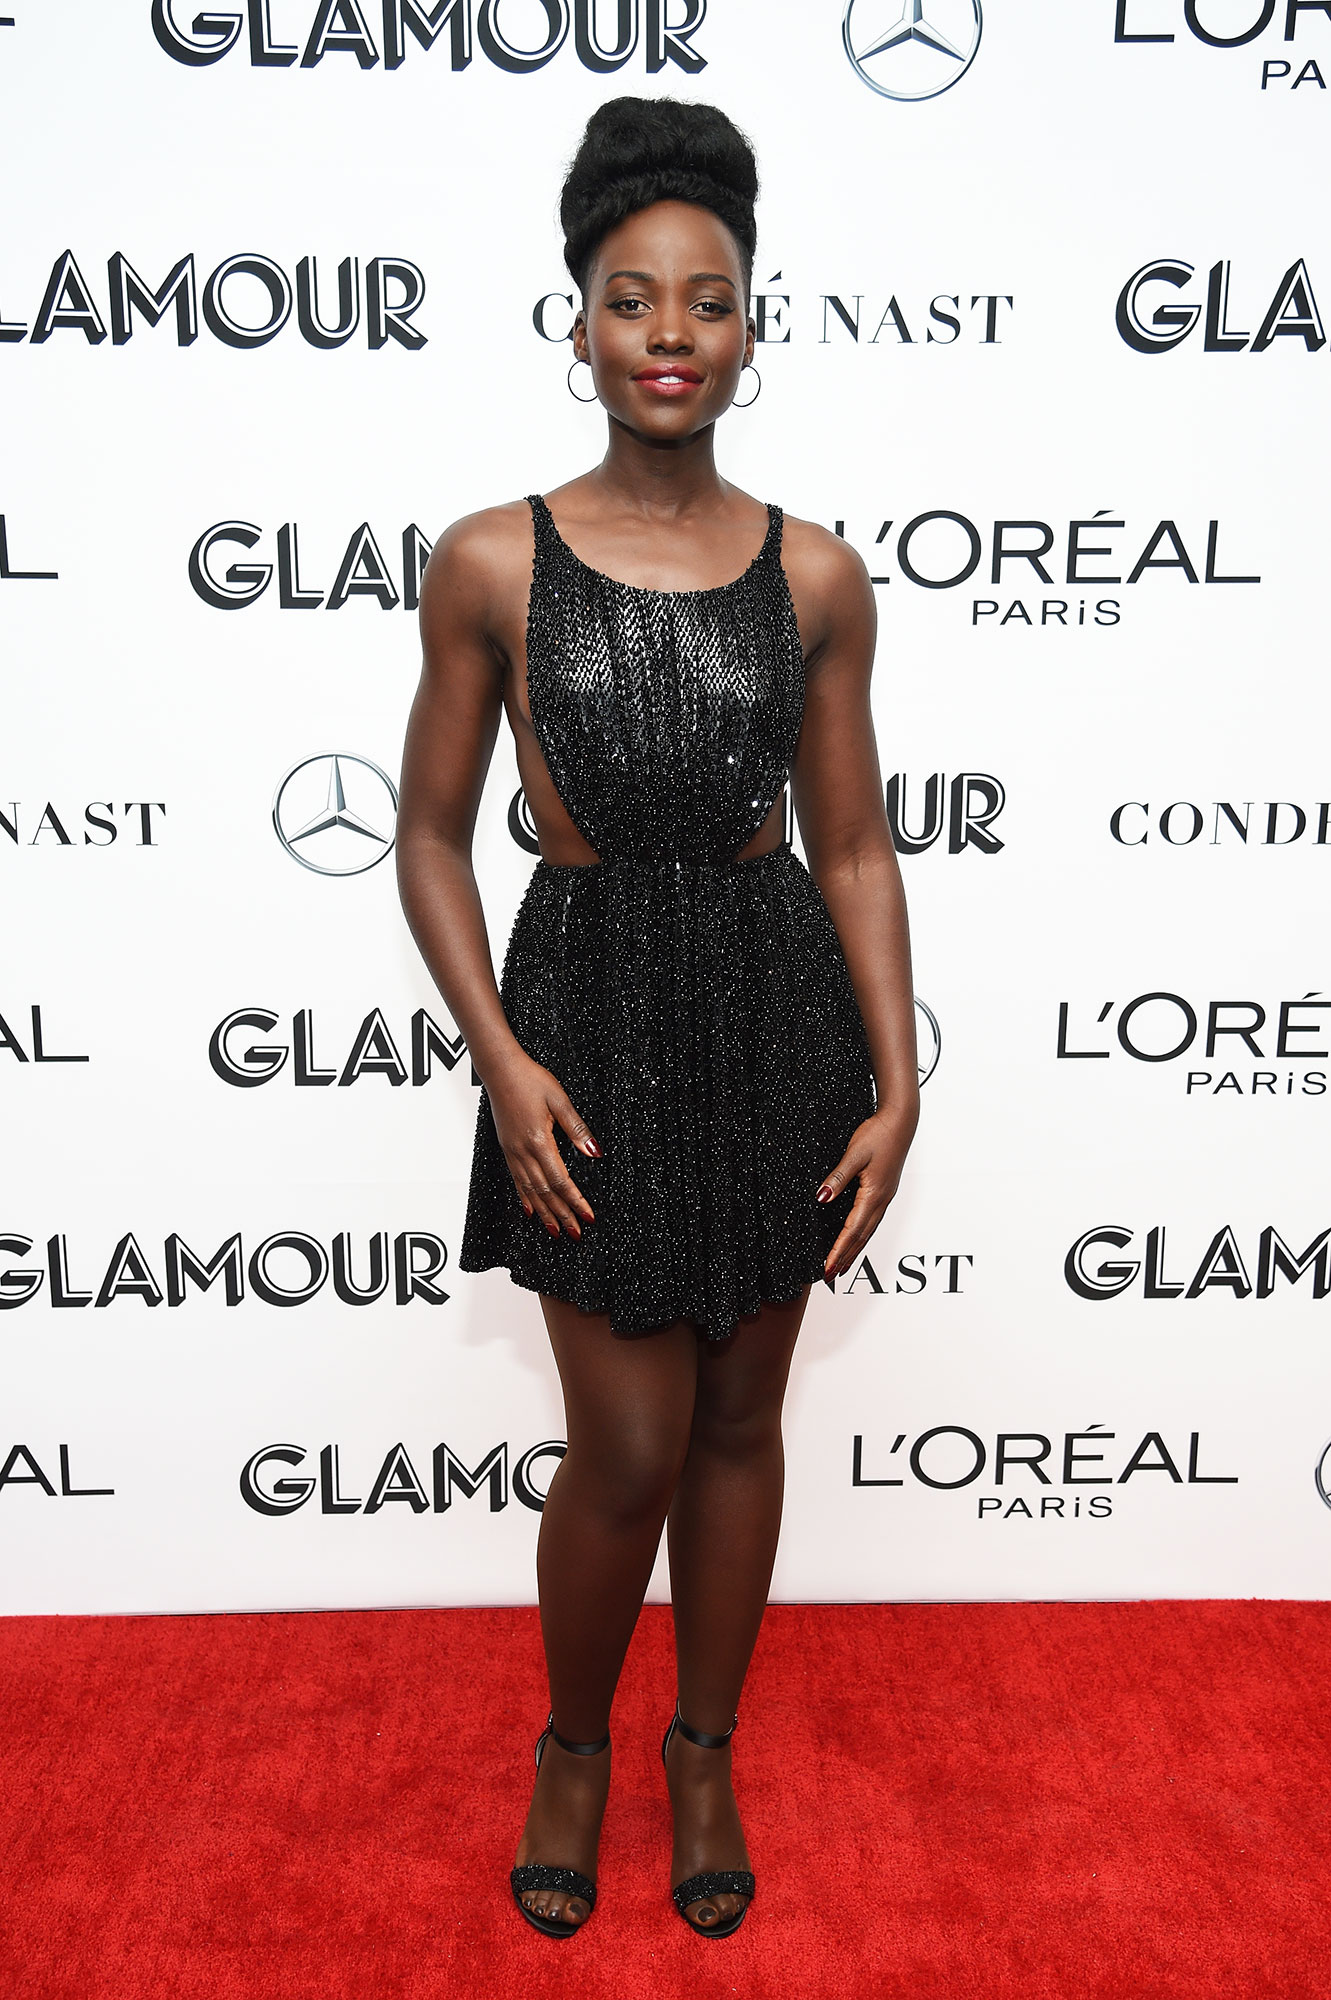 Lupita Nyong'o - In a beaded cutout design on Nov. 12.